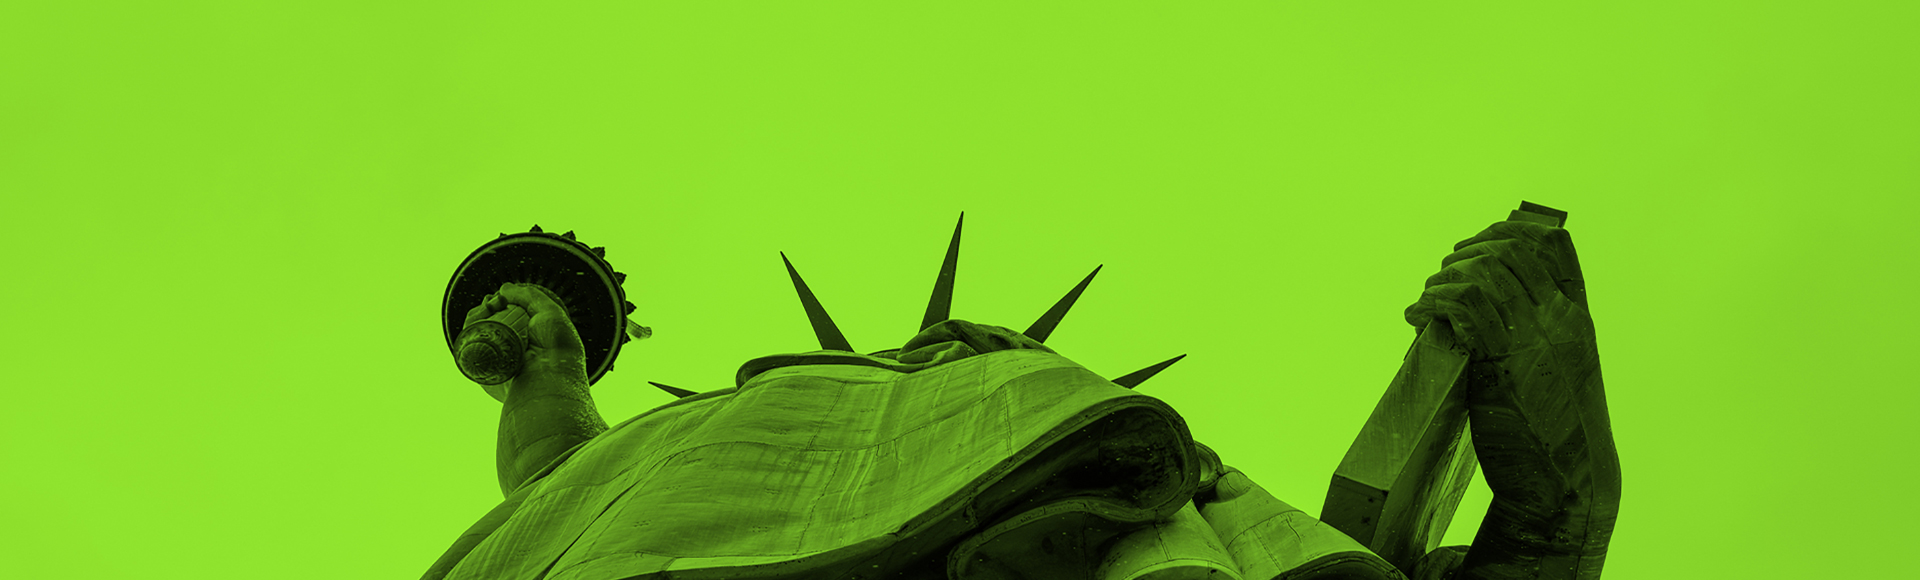 Close-up of Statue of Liberty's crown symbolizing liberty as New York bans employers from asking job applicants about pay history.